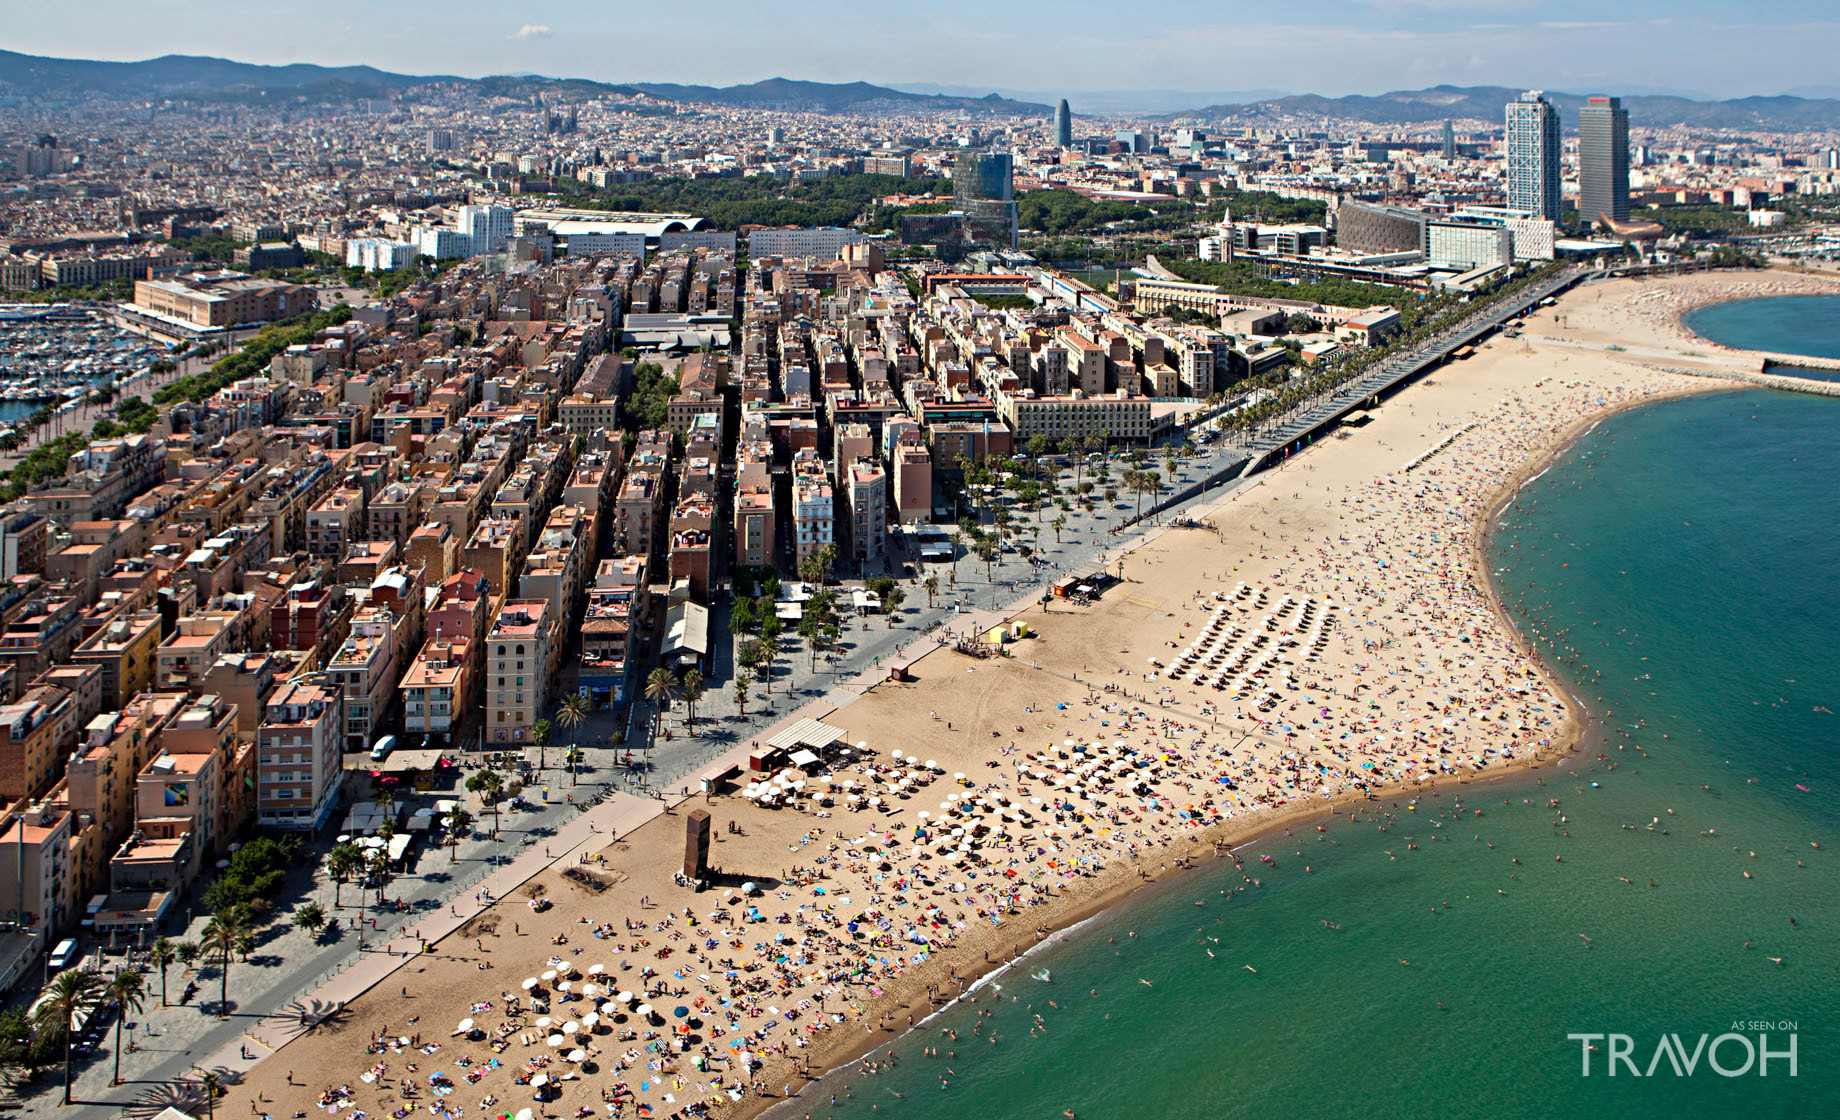 Barceloneta Beach - Exploring 10 of the Top Beaches in Barcelona, Spain